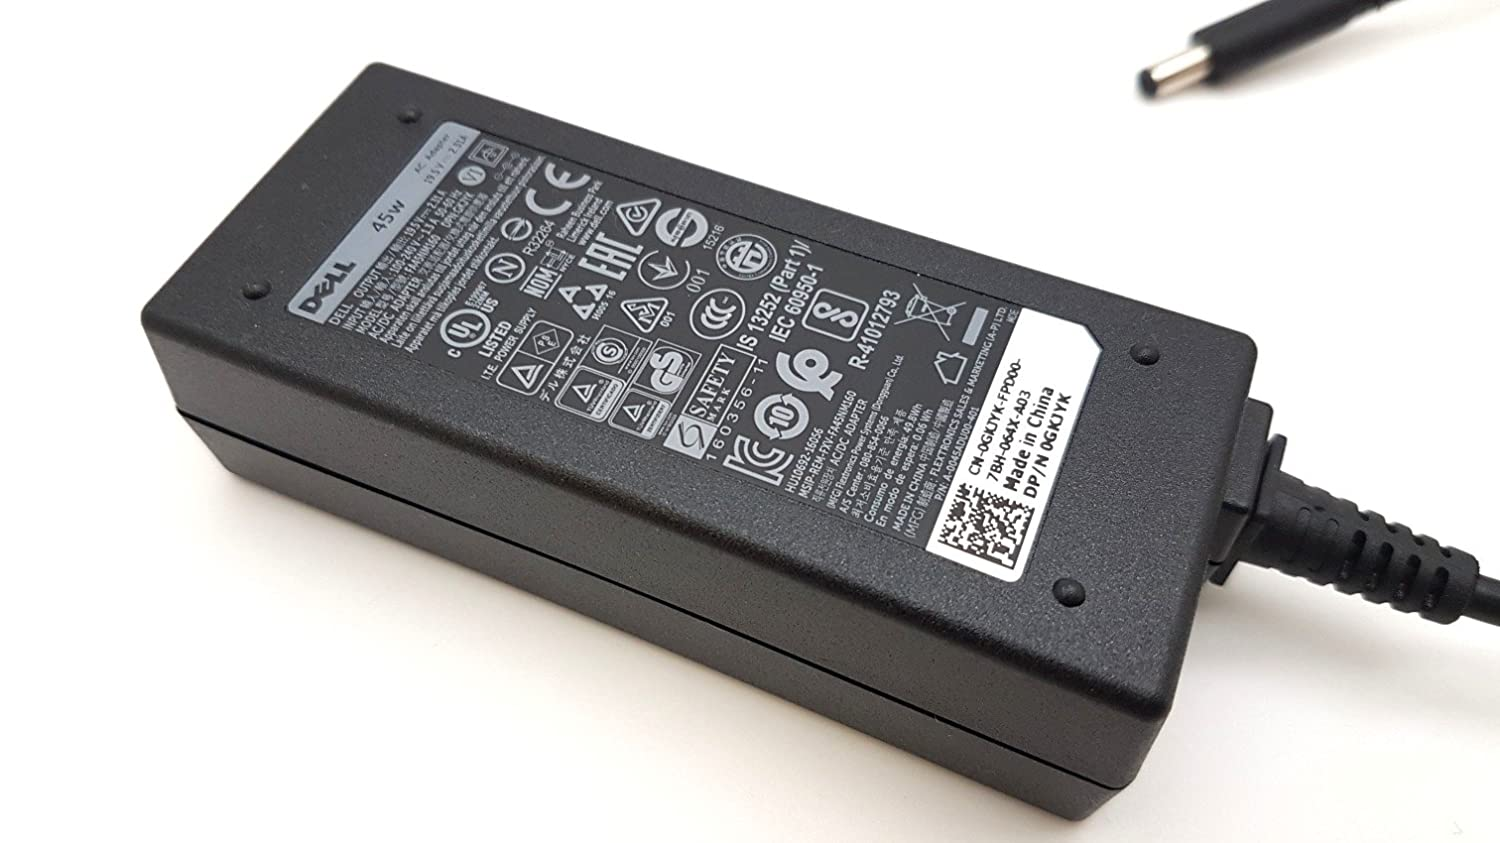 13 (9343) DELL XPS Power Unit 45w Charger Adapter Charger 45w 19.5V 2.31A, [Importado de UK] 0fadd7